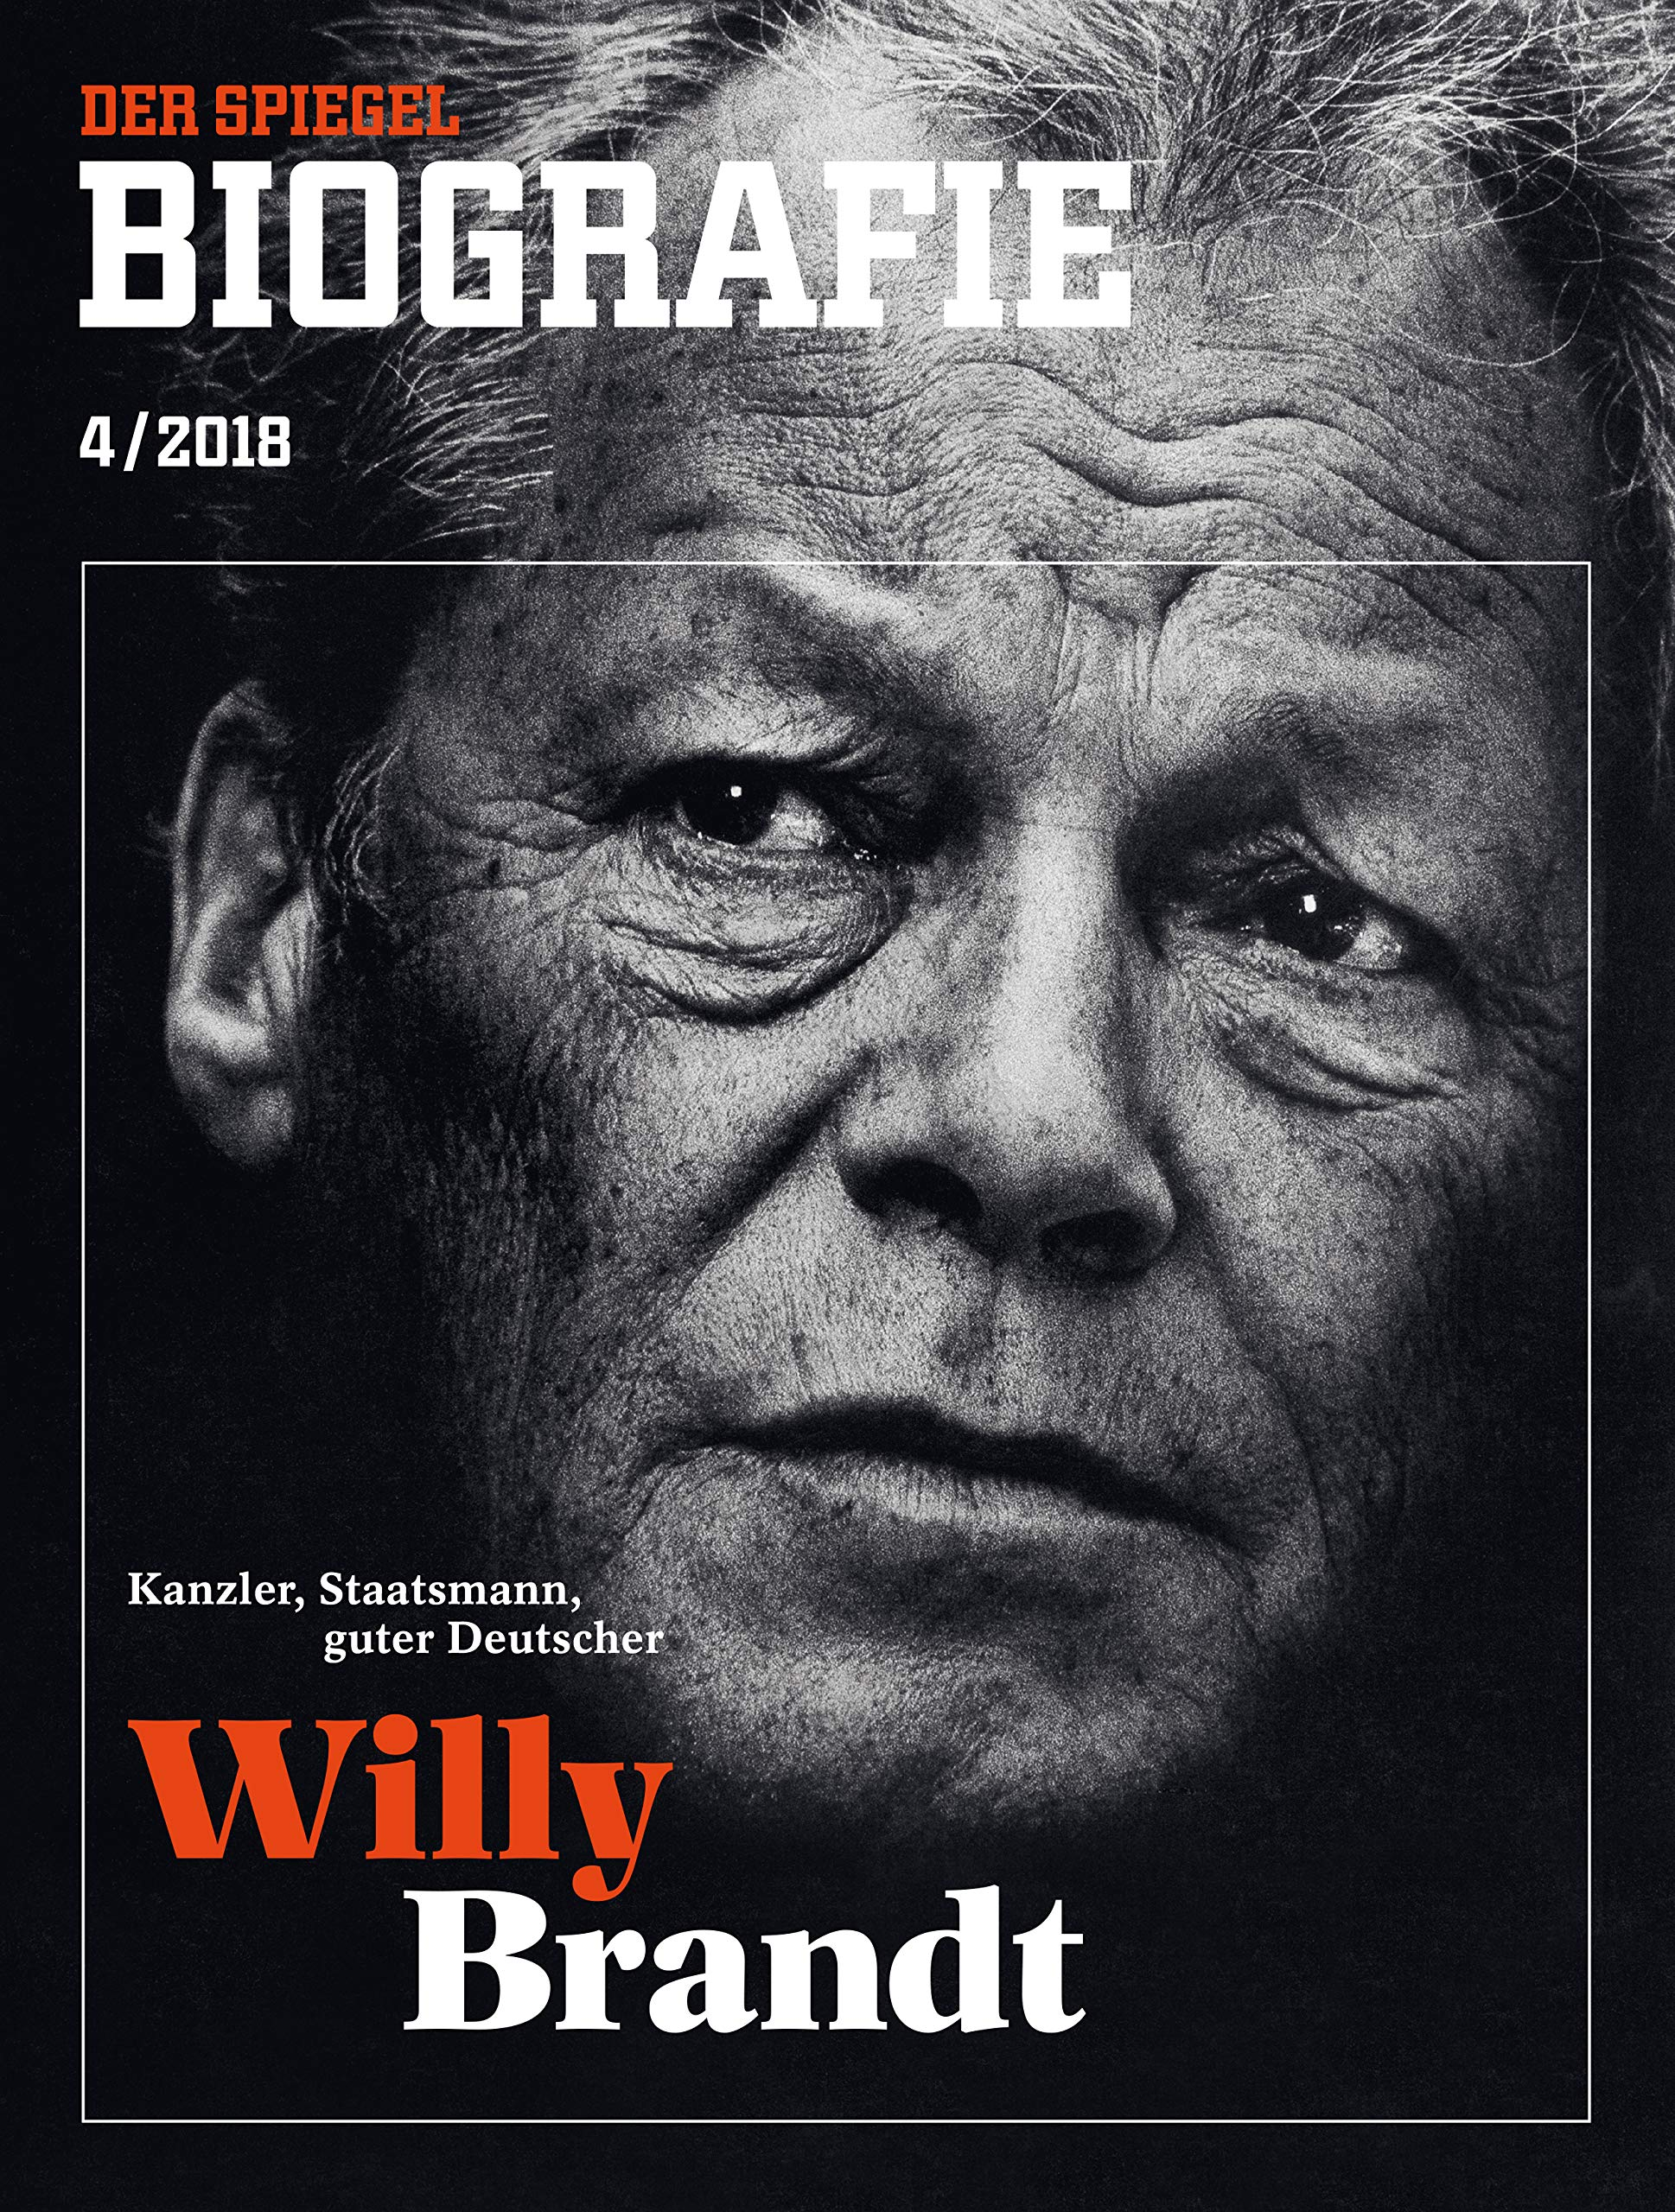 Willy Brandt Online Biografie Bundeskanzler